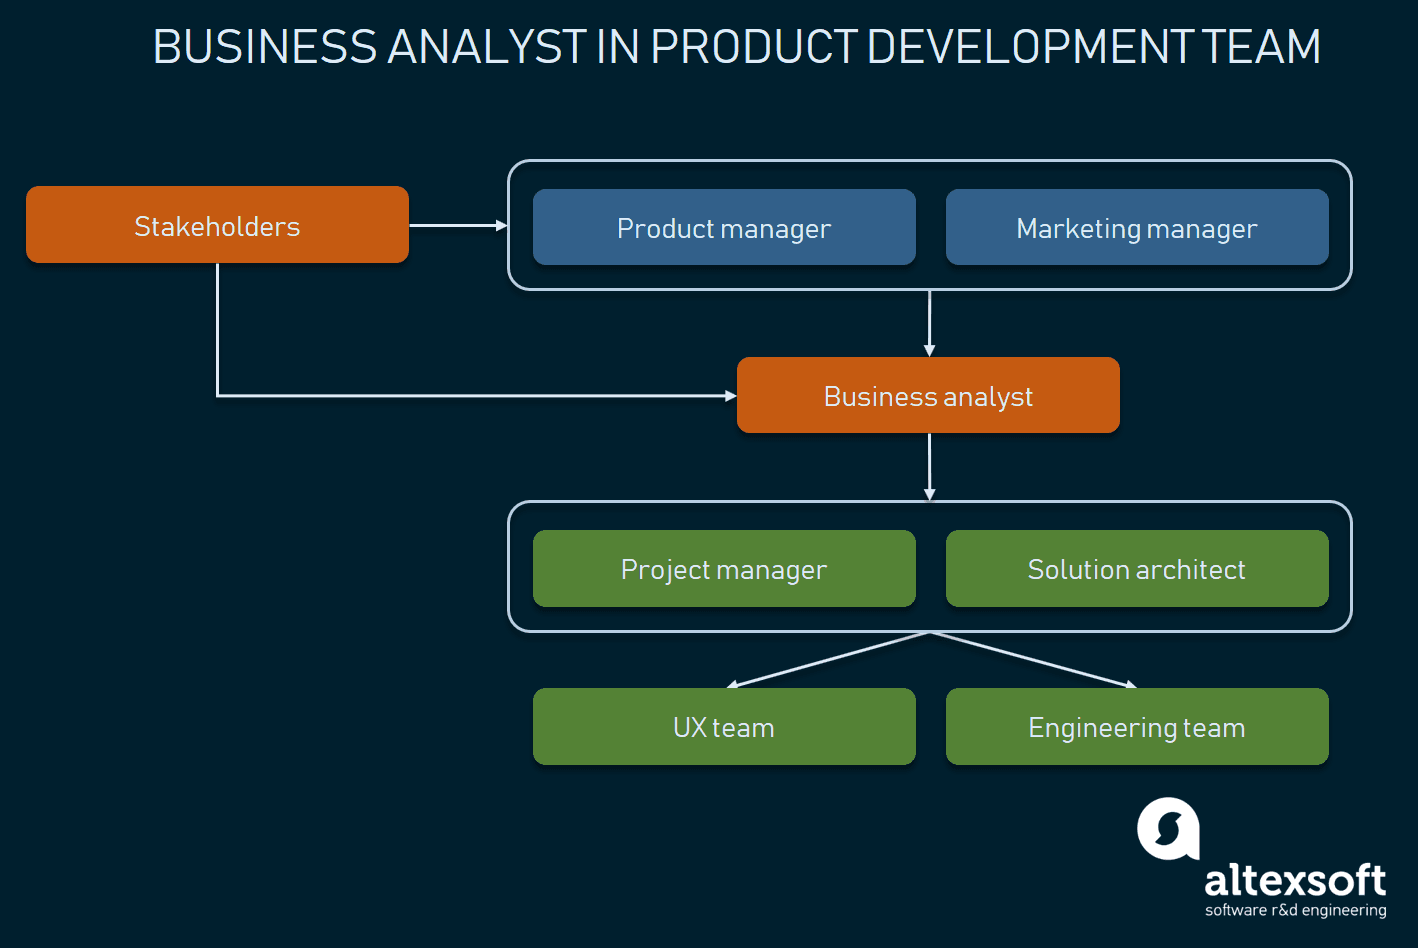 A business analyst role in the communication chain of product-related parties